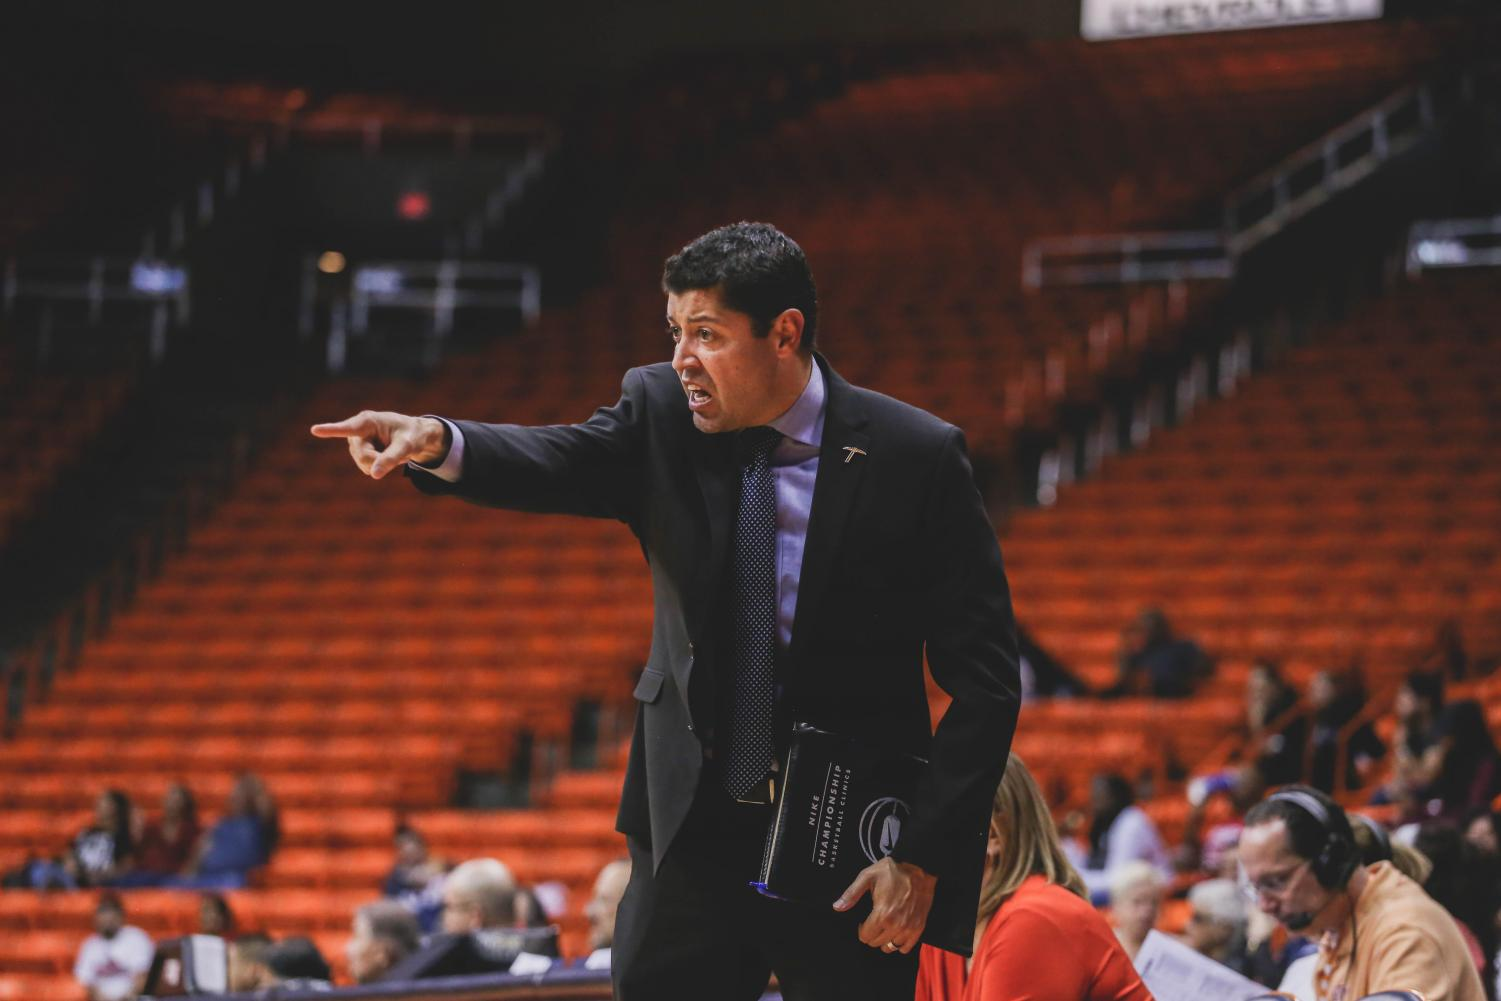 Assistant+Coach+Michael+Madrid+will+be+named+the+head+coach+at+Texas+A%26M-Kingsville